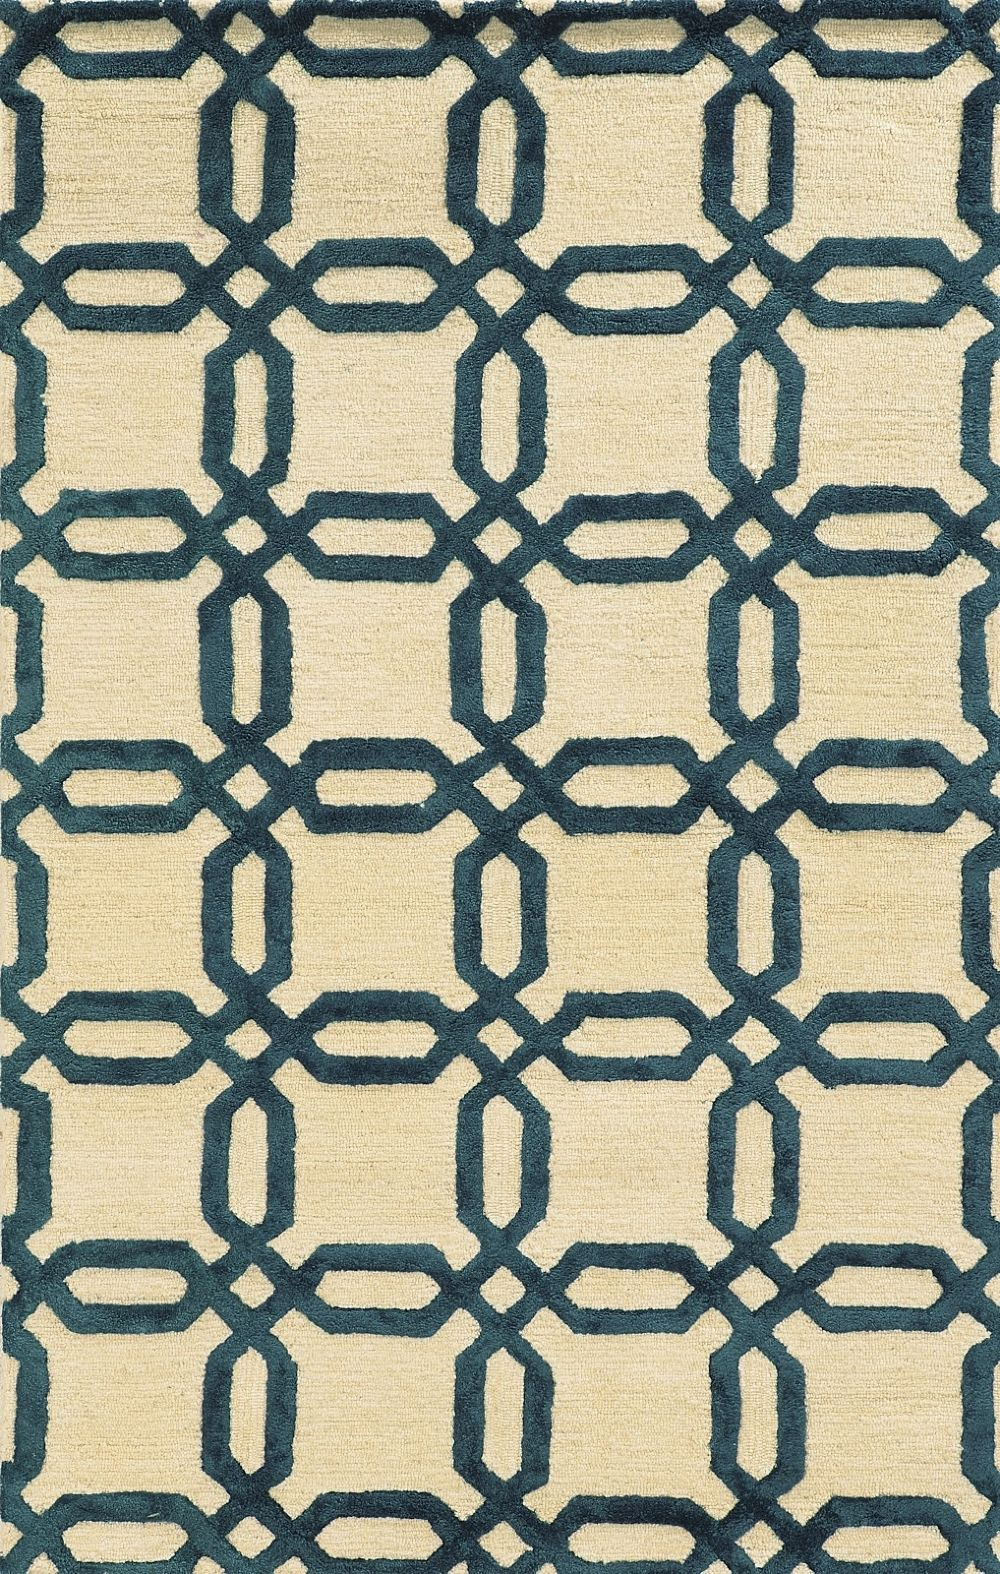 rizzy rugs eden harbor transitional area rug collection